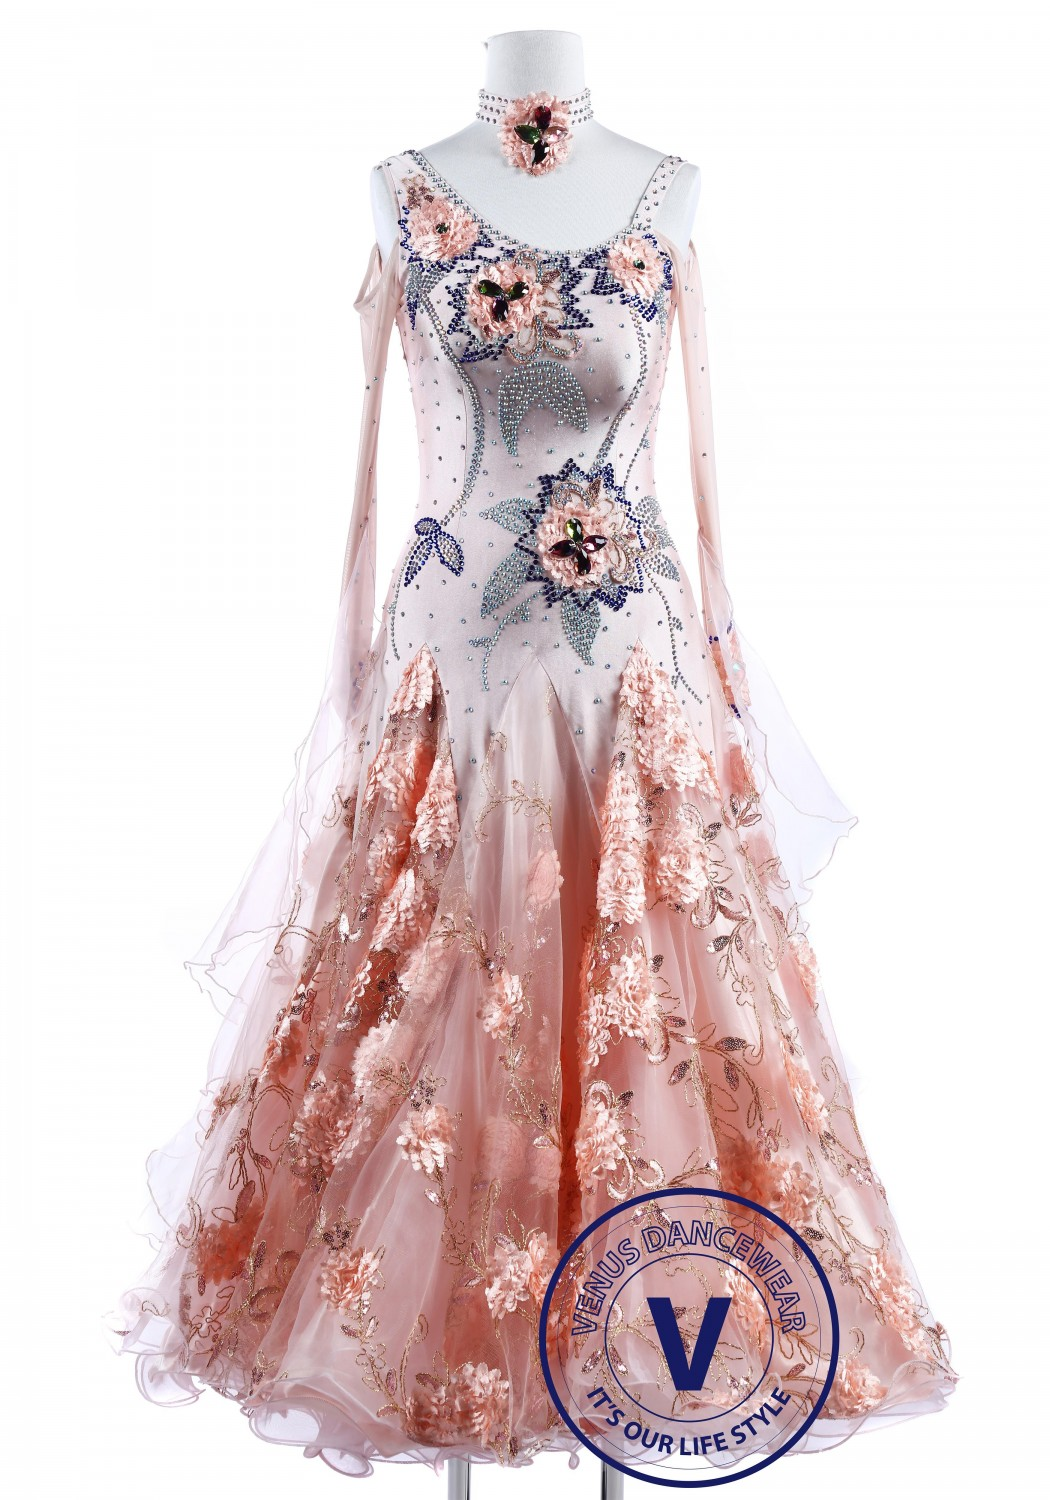 Apricot Pinkish Gray Standard Smooth Foxtrot Waltz Quickstep Dress